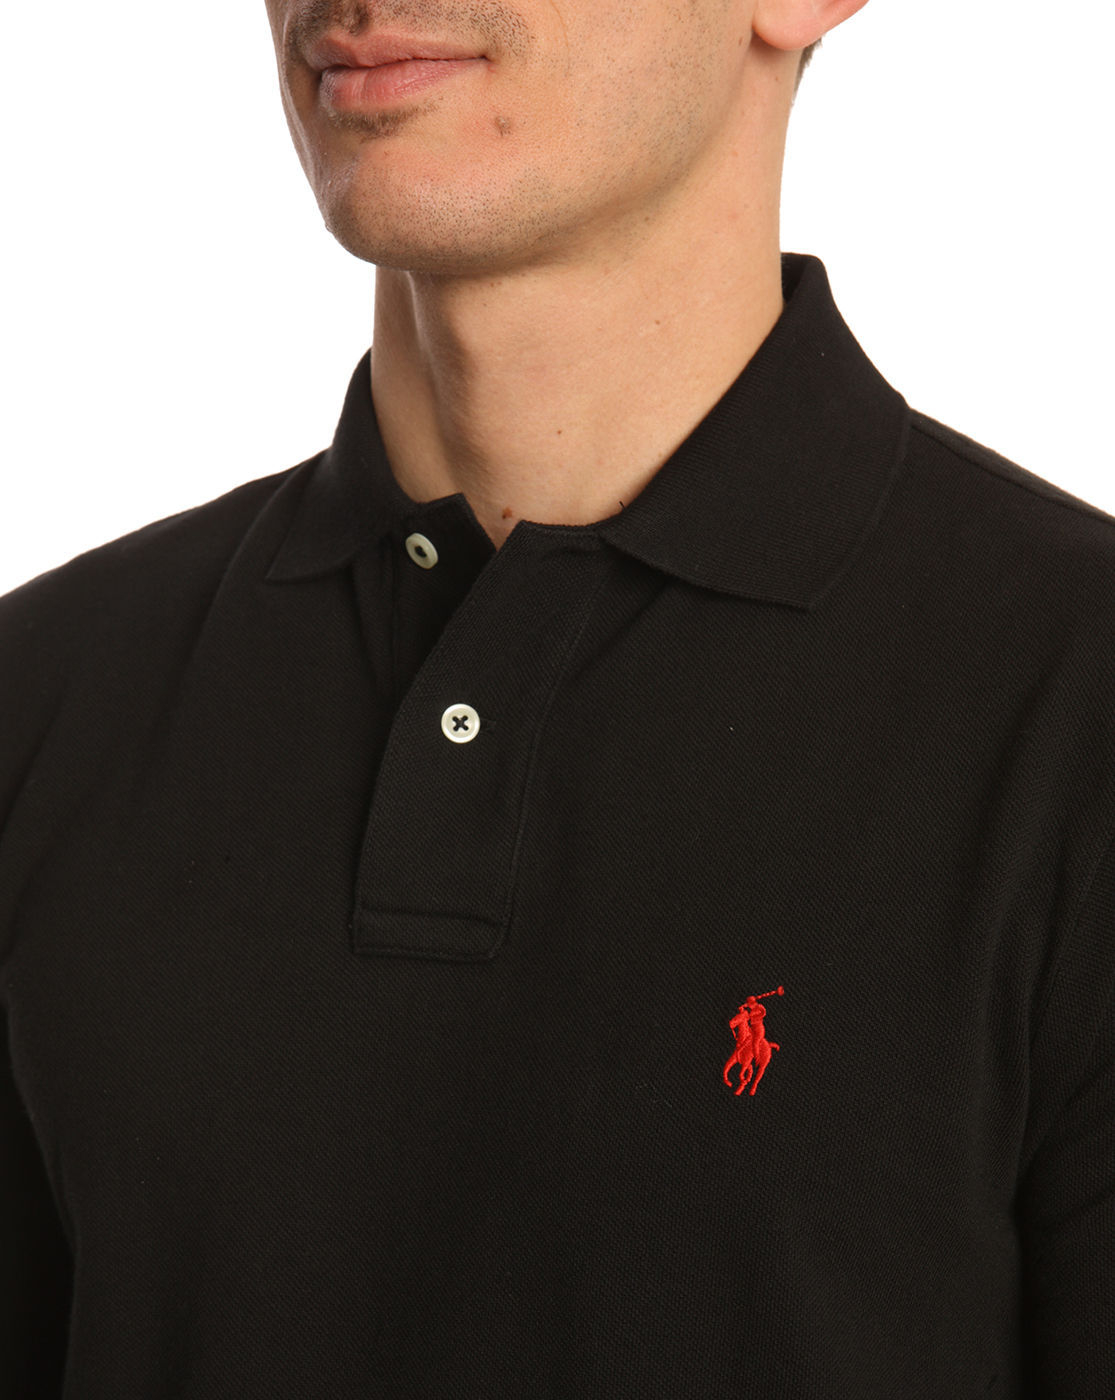 polo ralph lauren custom fit black polo shirt in black for men lyst. Black Bedroom Furniture Sets. Home Design Ideas